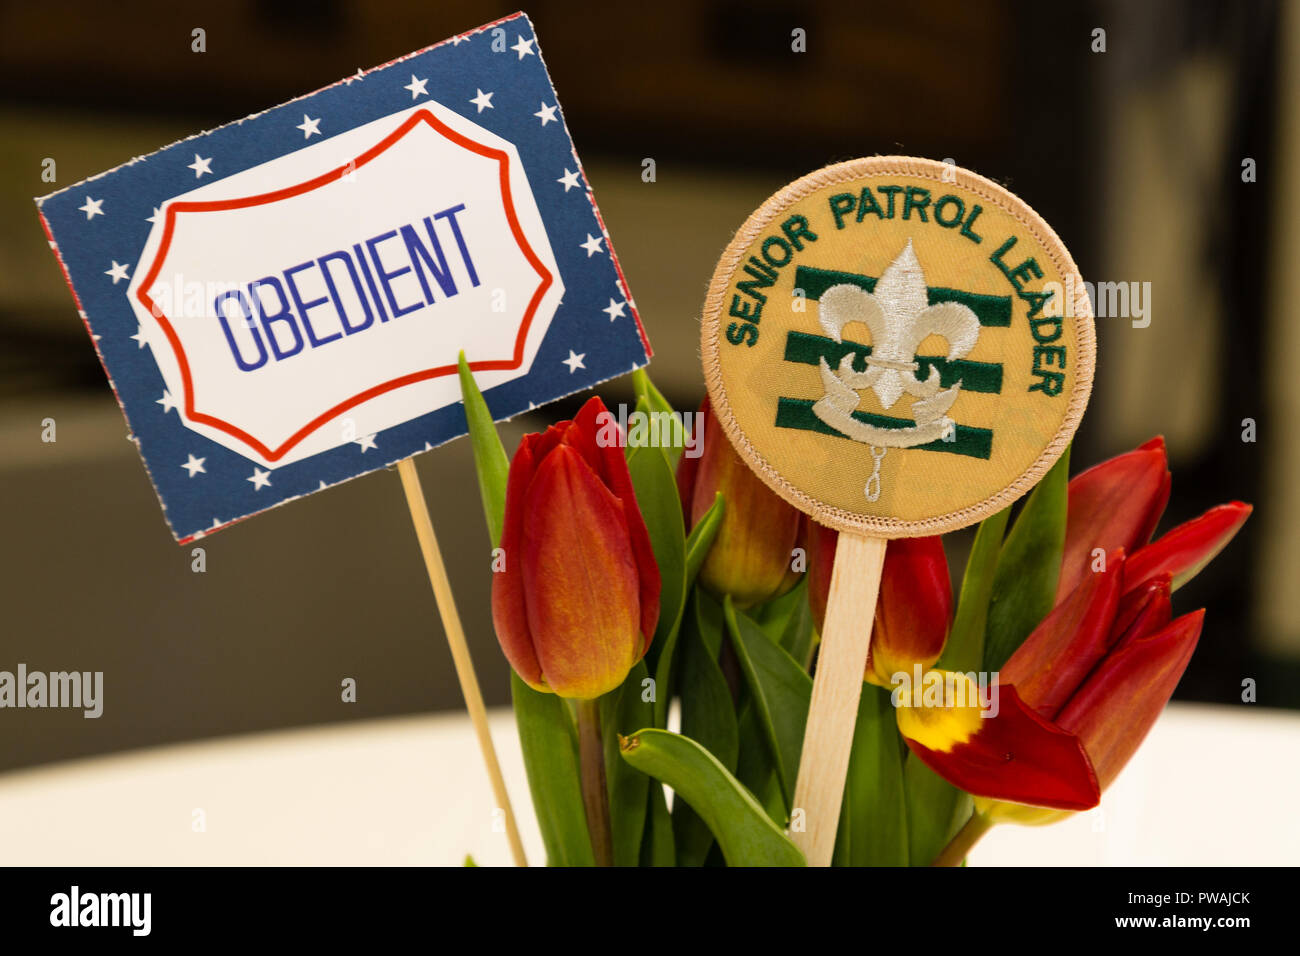 A Scout Senior Patrol Leader is obedient sign and patch with flowers - Stock Image